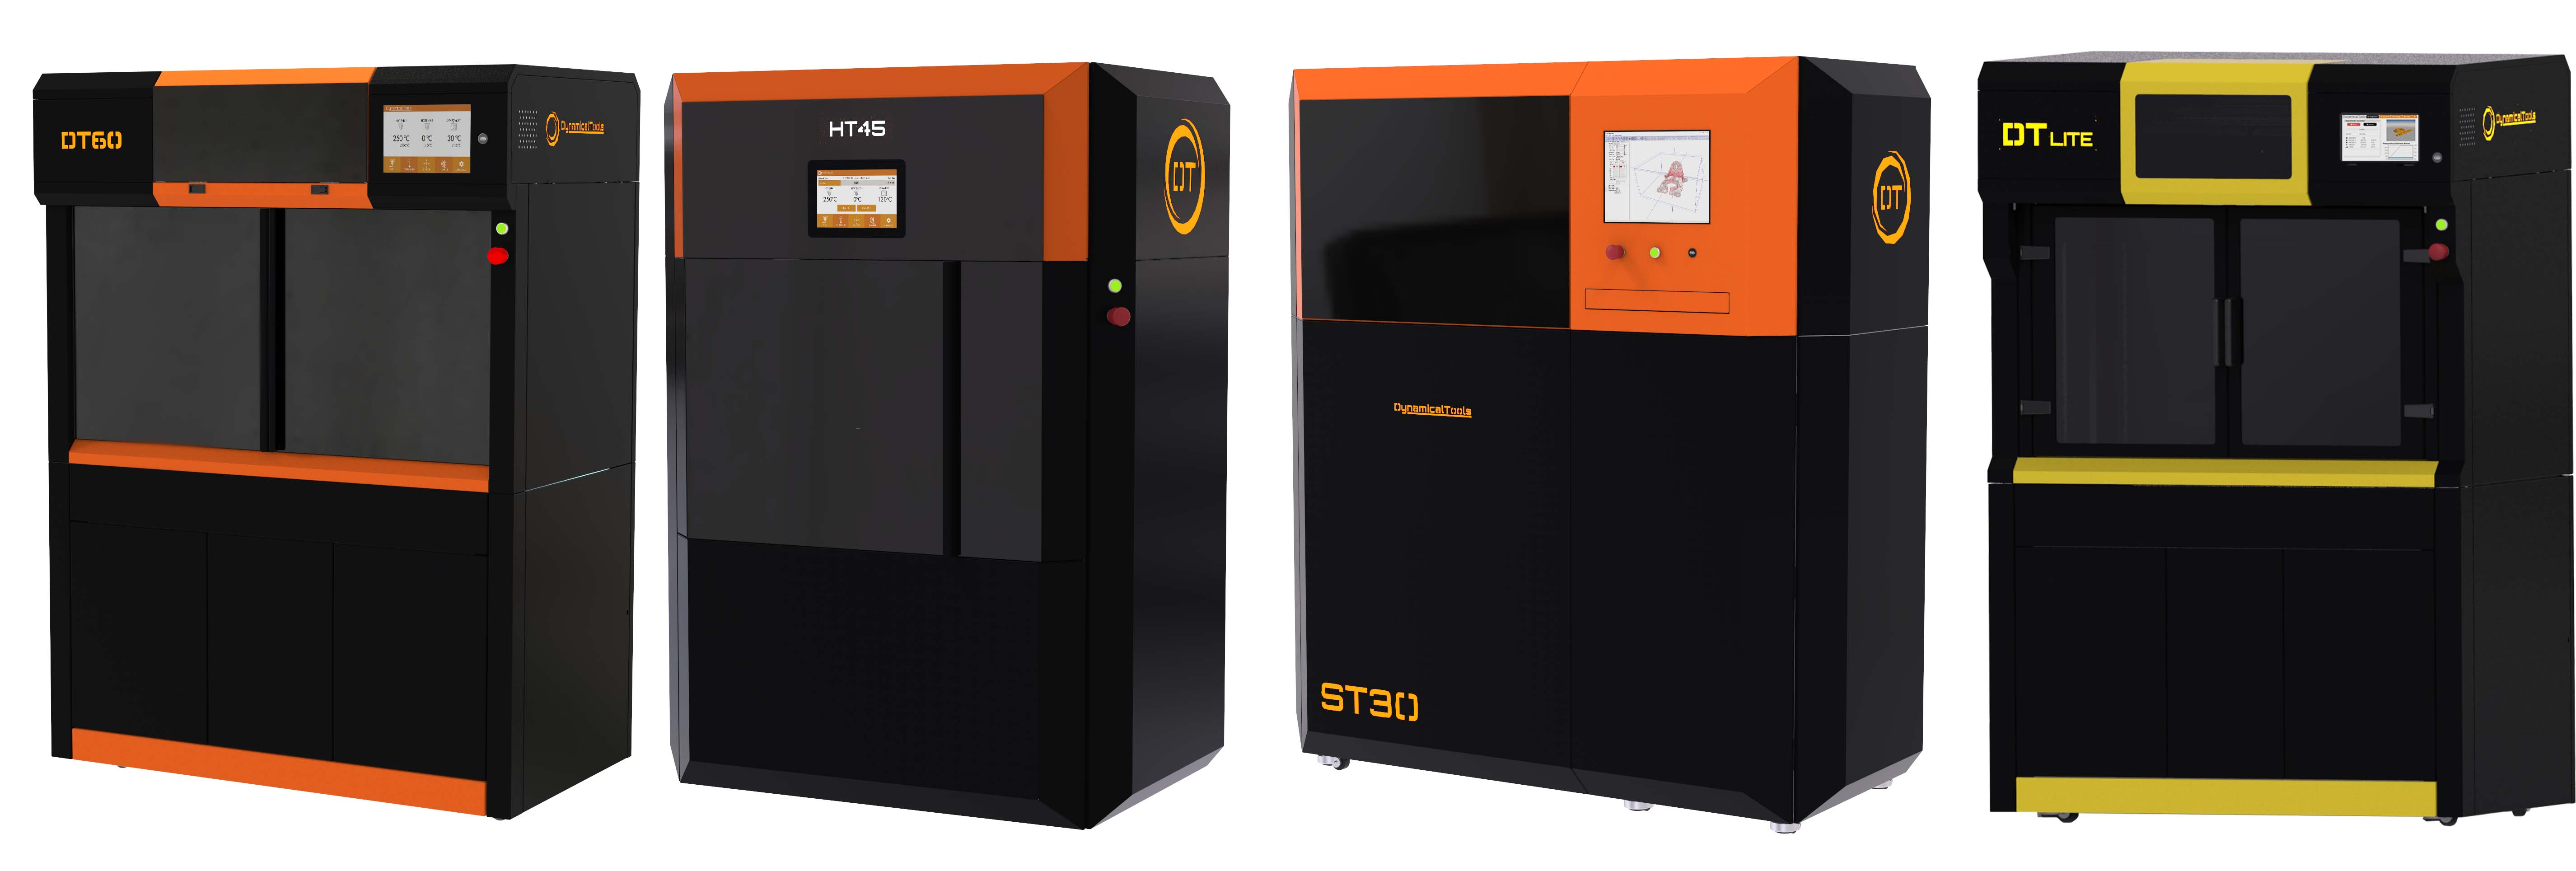 DYNAMICAL TOOLS presents its new products internationally at Formnext